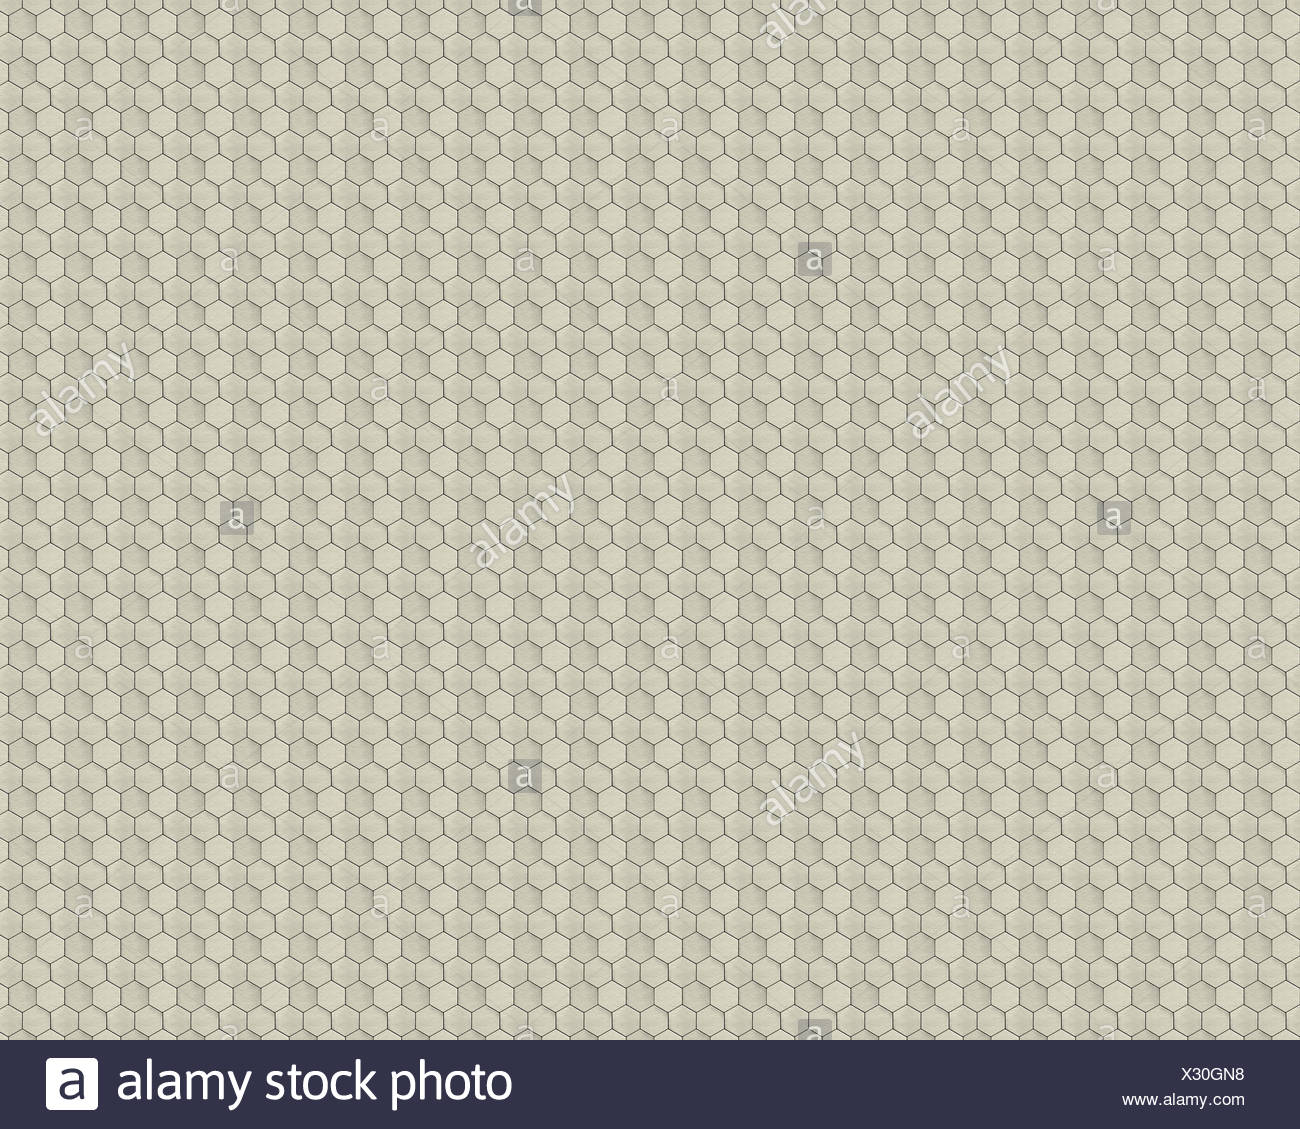 Hexagon Pattern Background - Stock Image